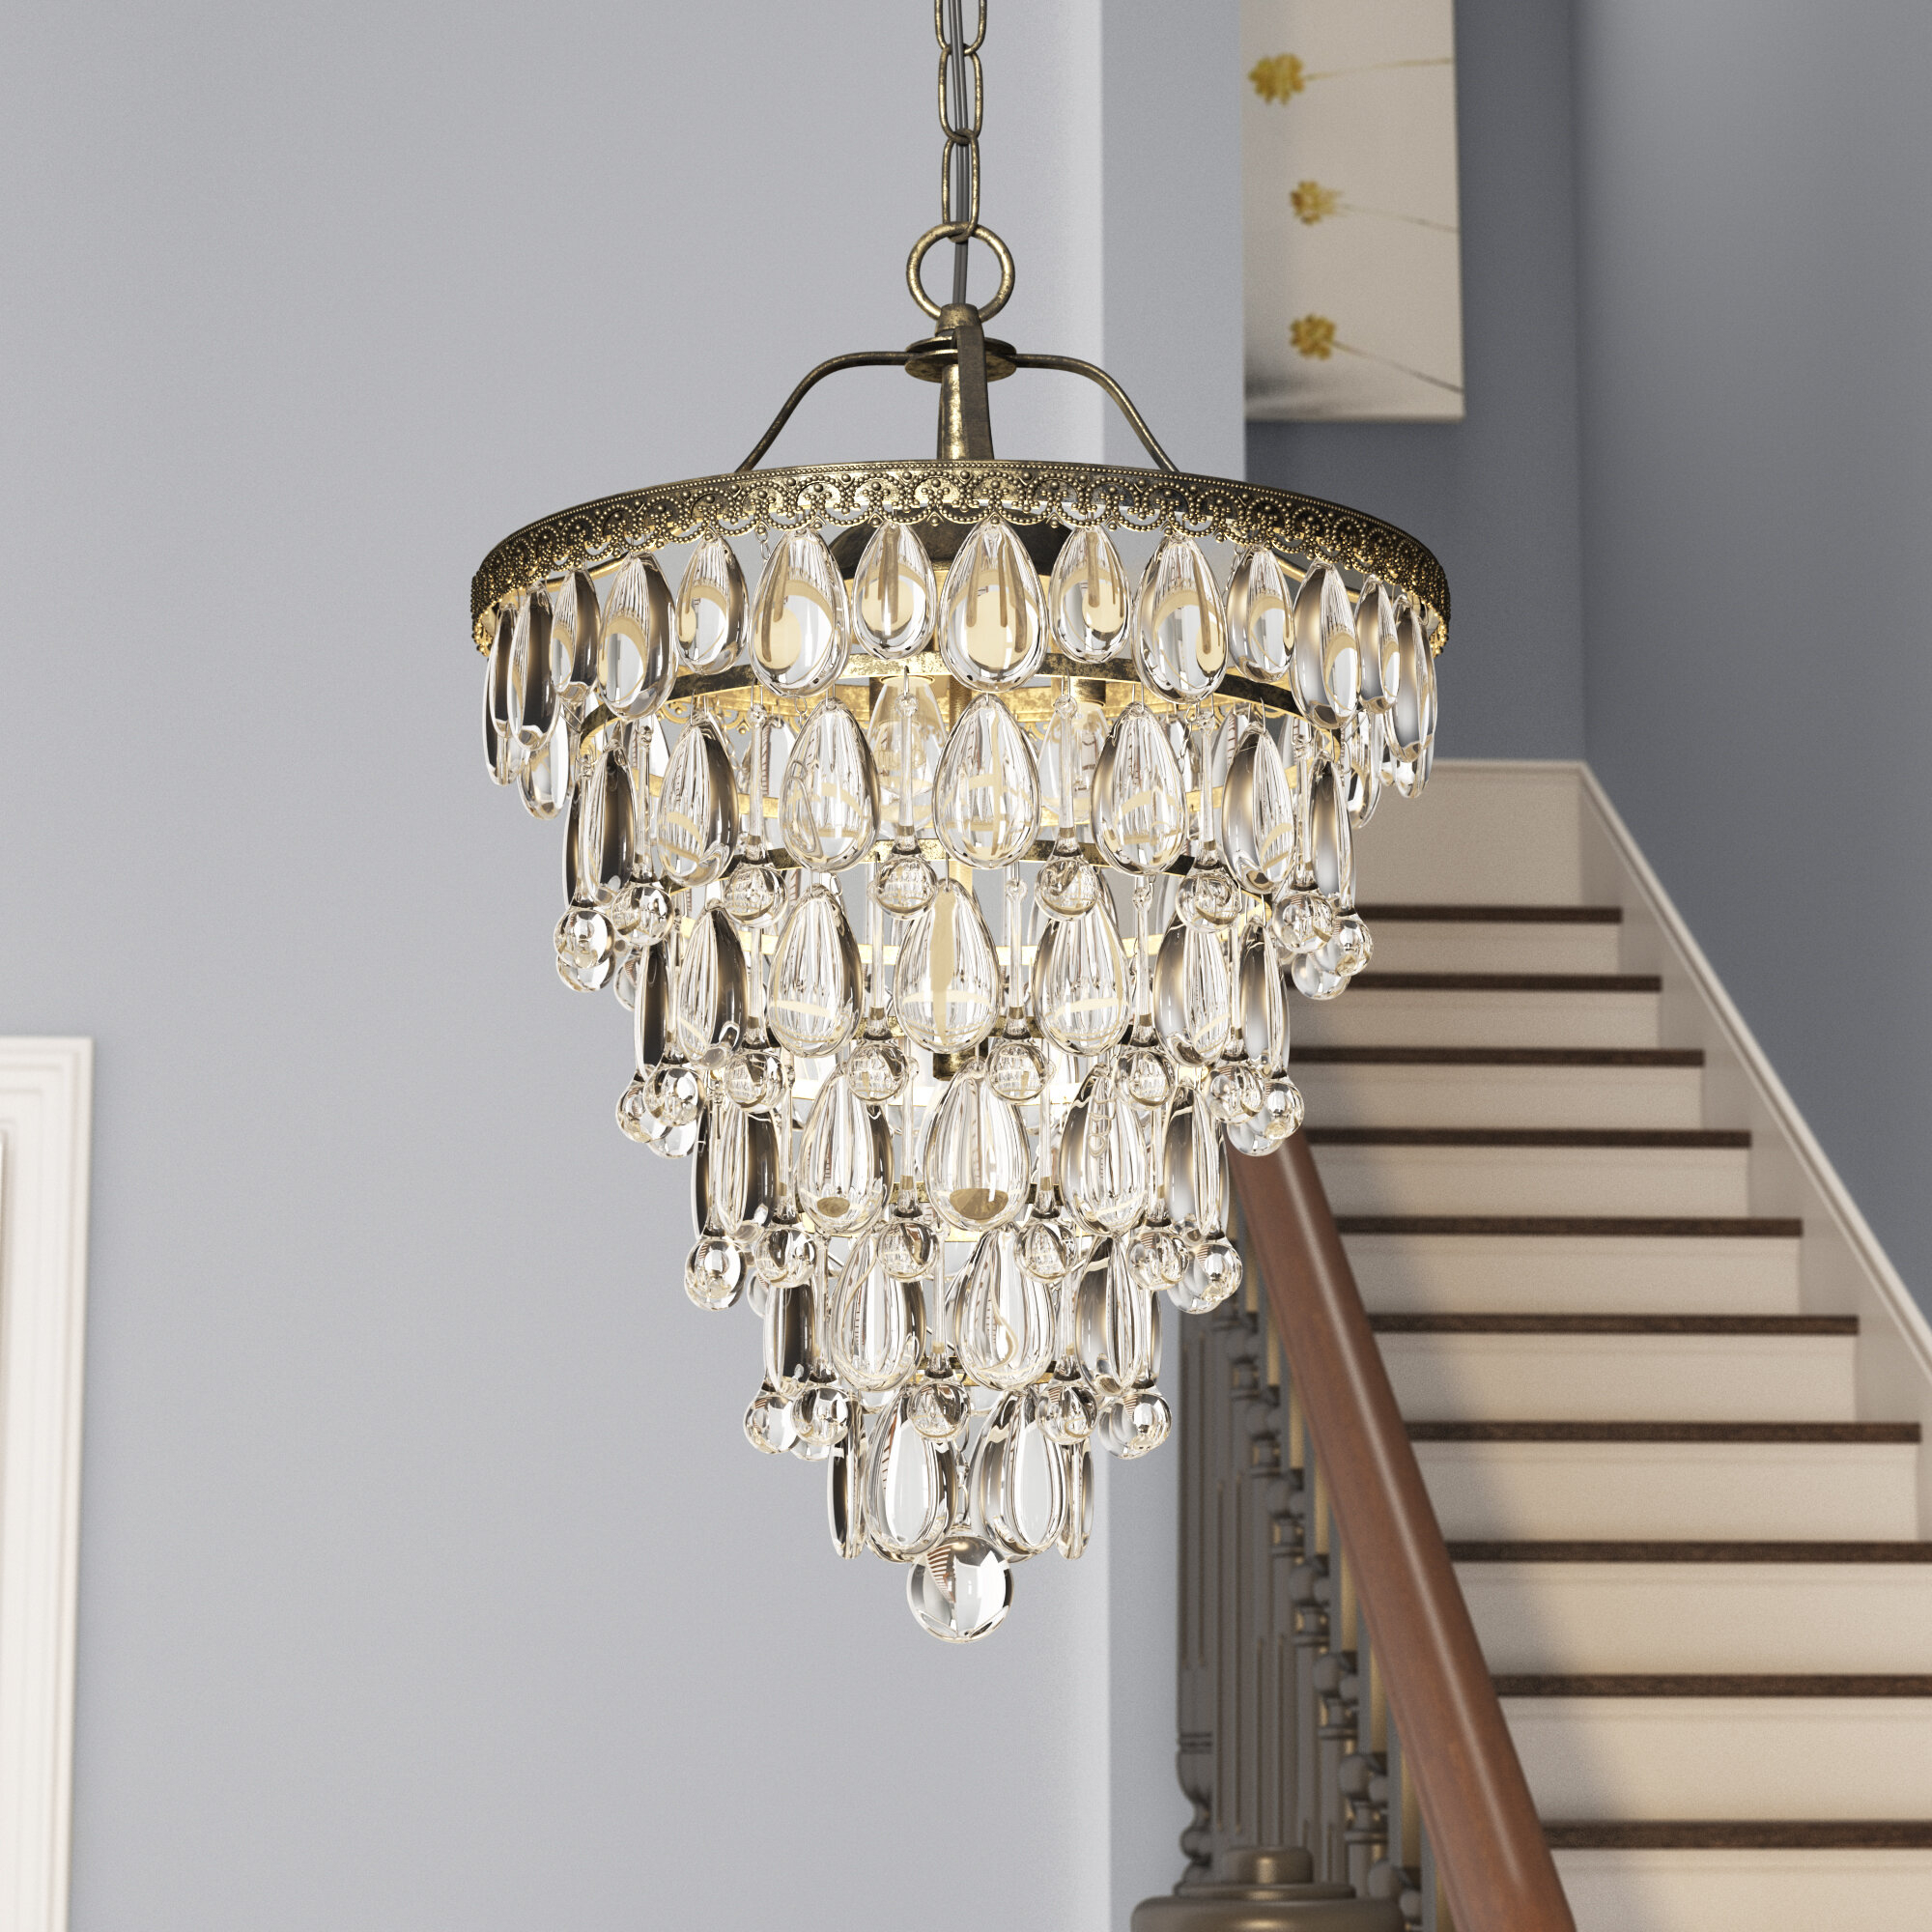 Totnes 4 Light Crystal Chandelier With Benedetto 5 Light Crystal Chandeliers (View 8 of 30)